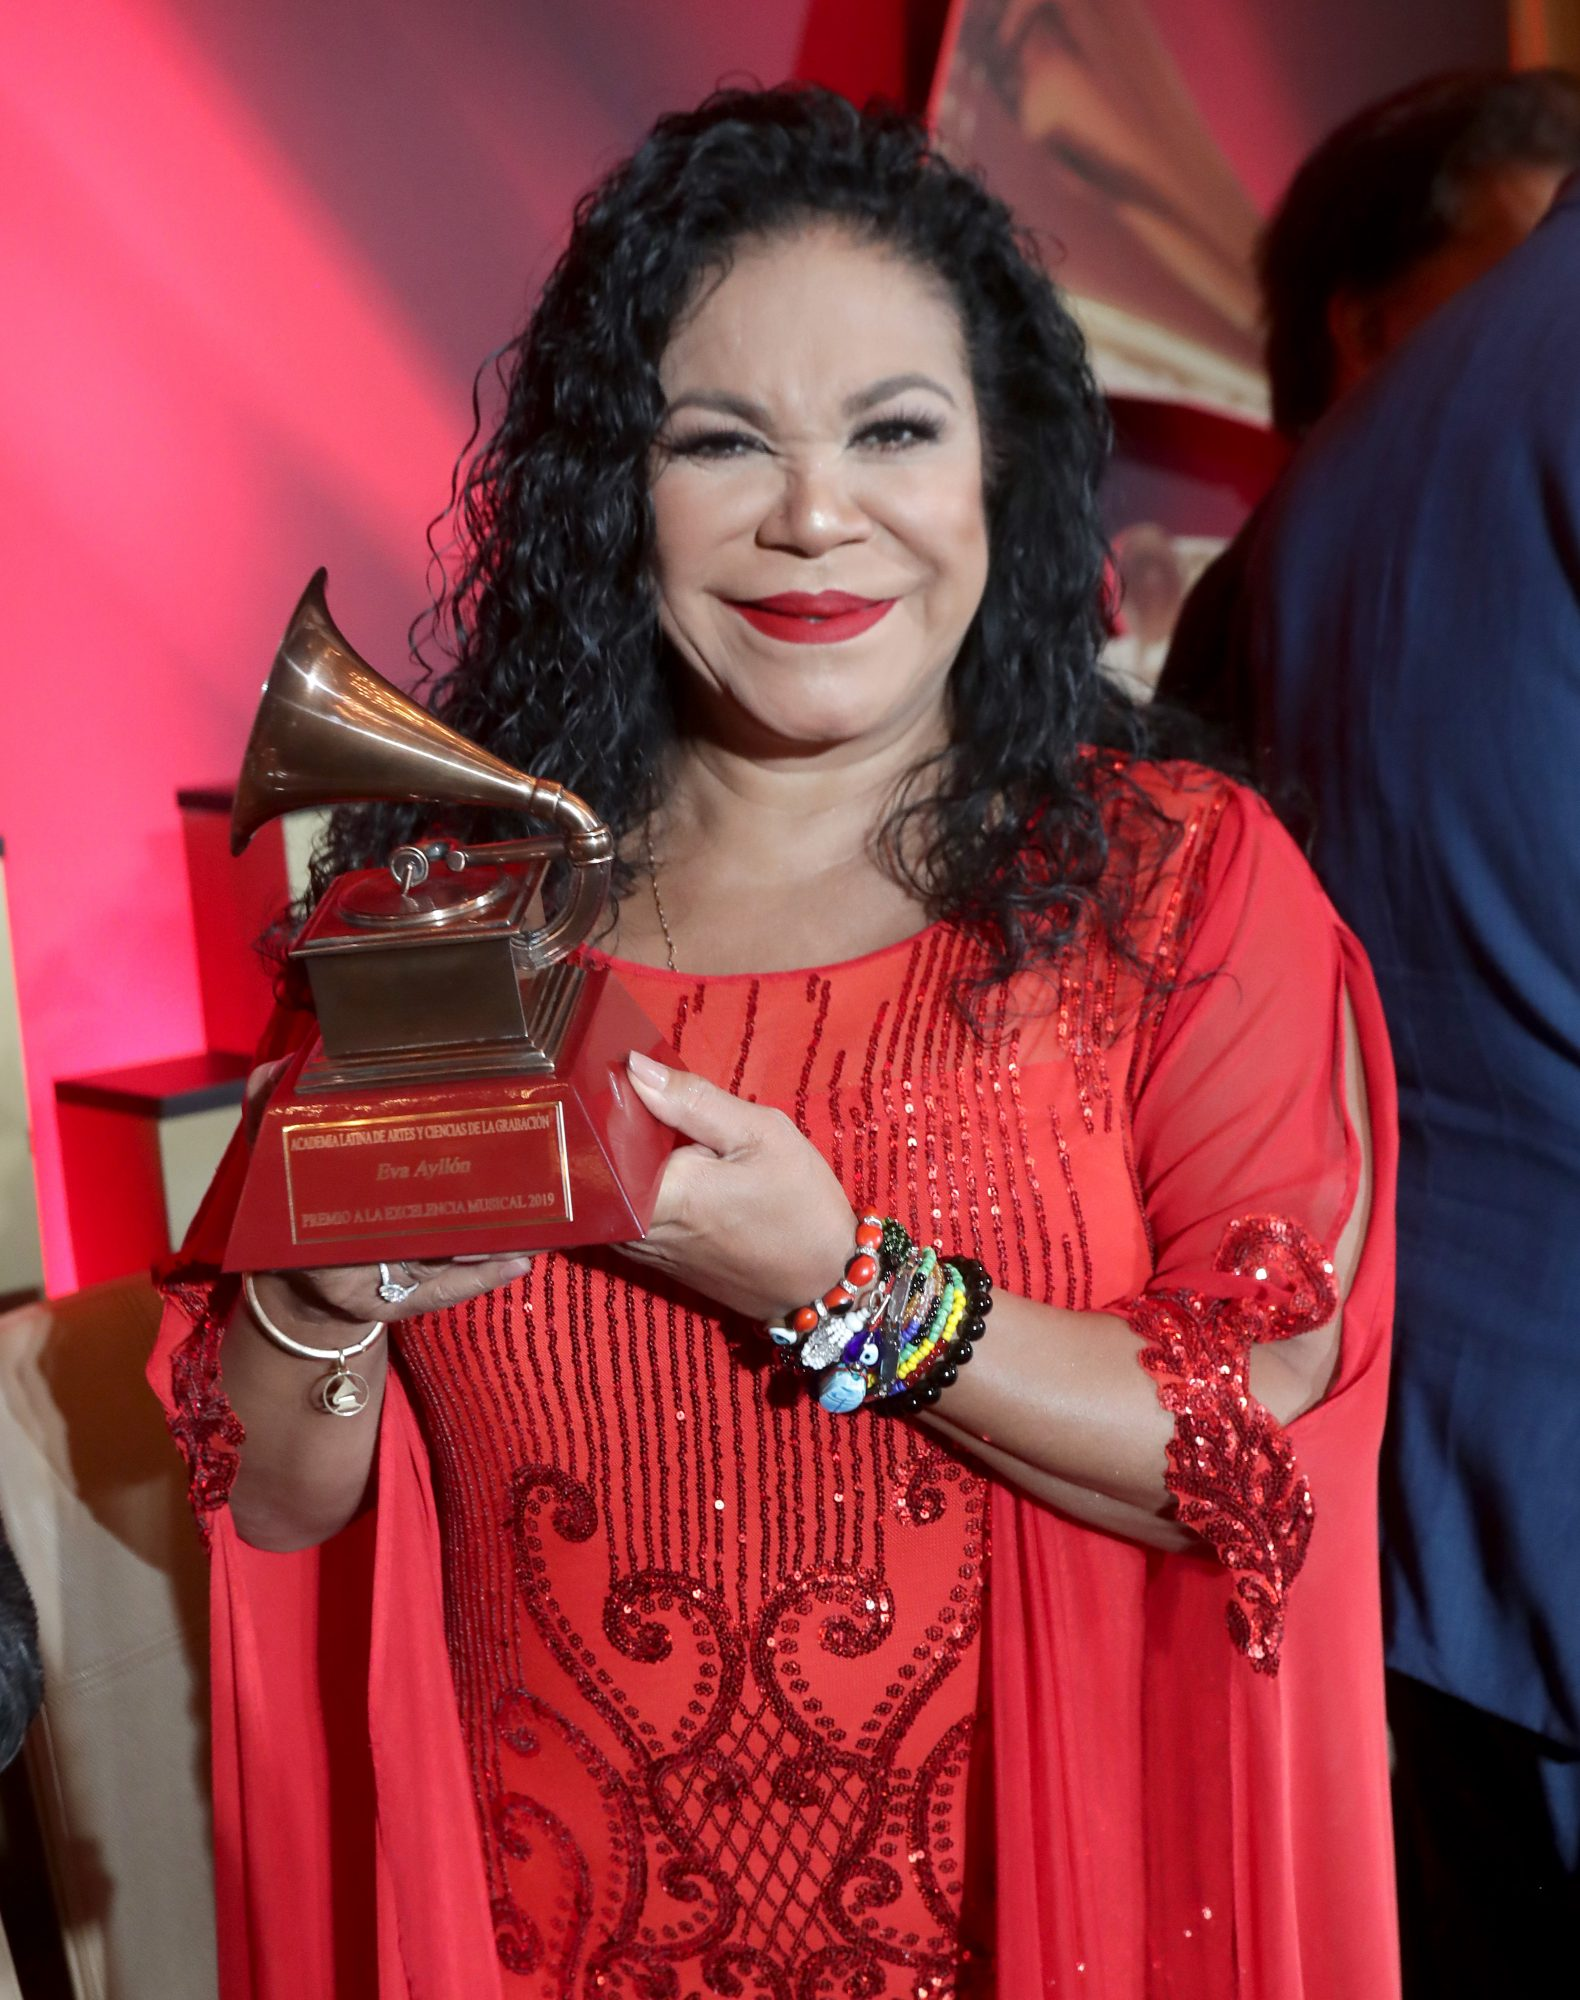 The 20th Annual Latin GRAMMY Awards - Special Awards Presentation